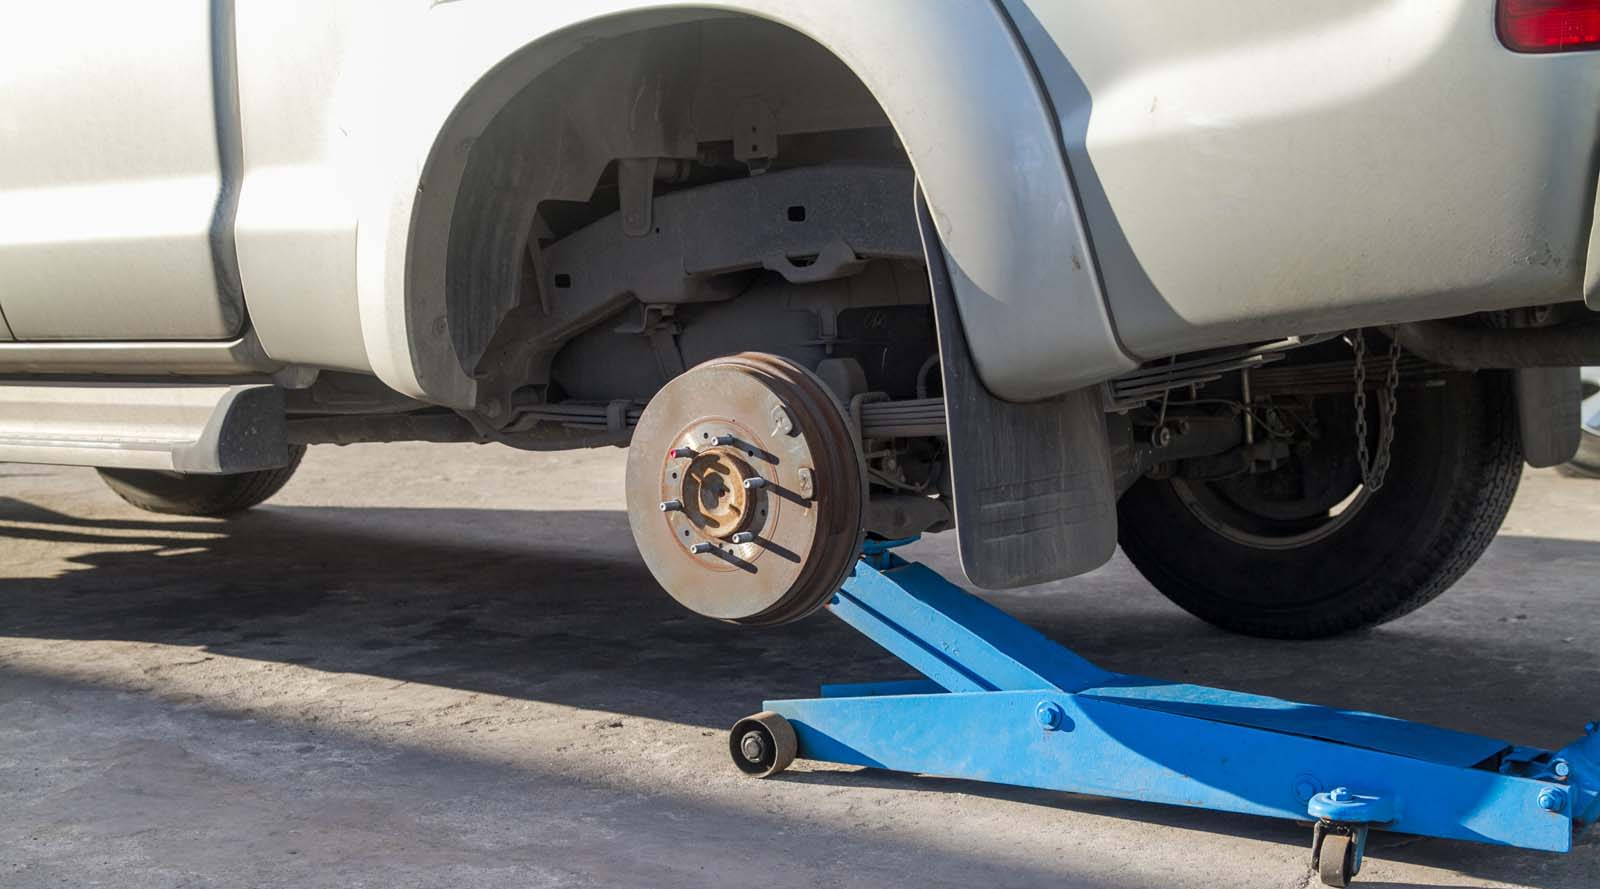 What Tools Do I Need To Lift My Ute?